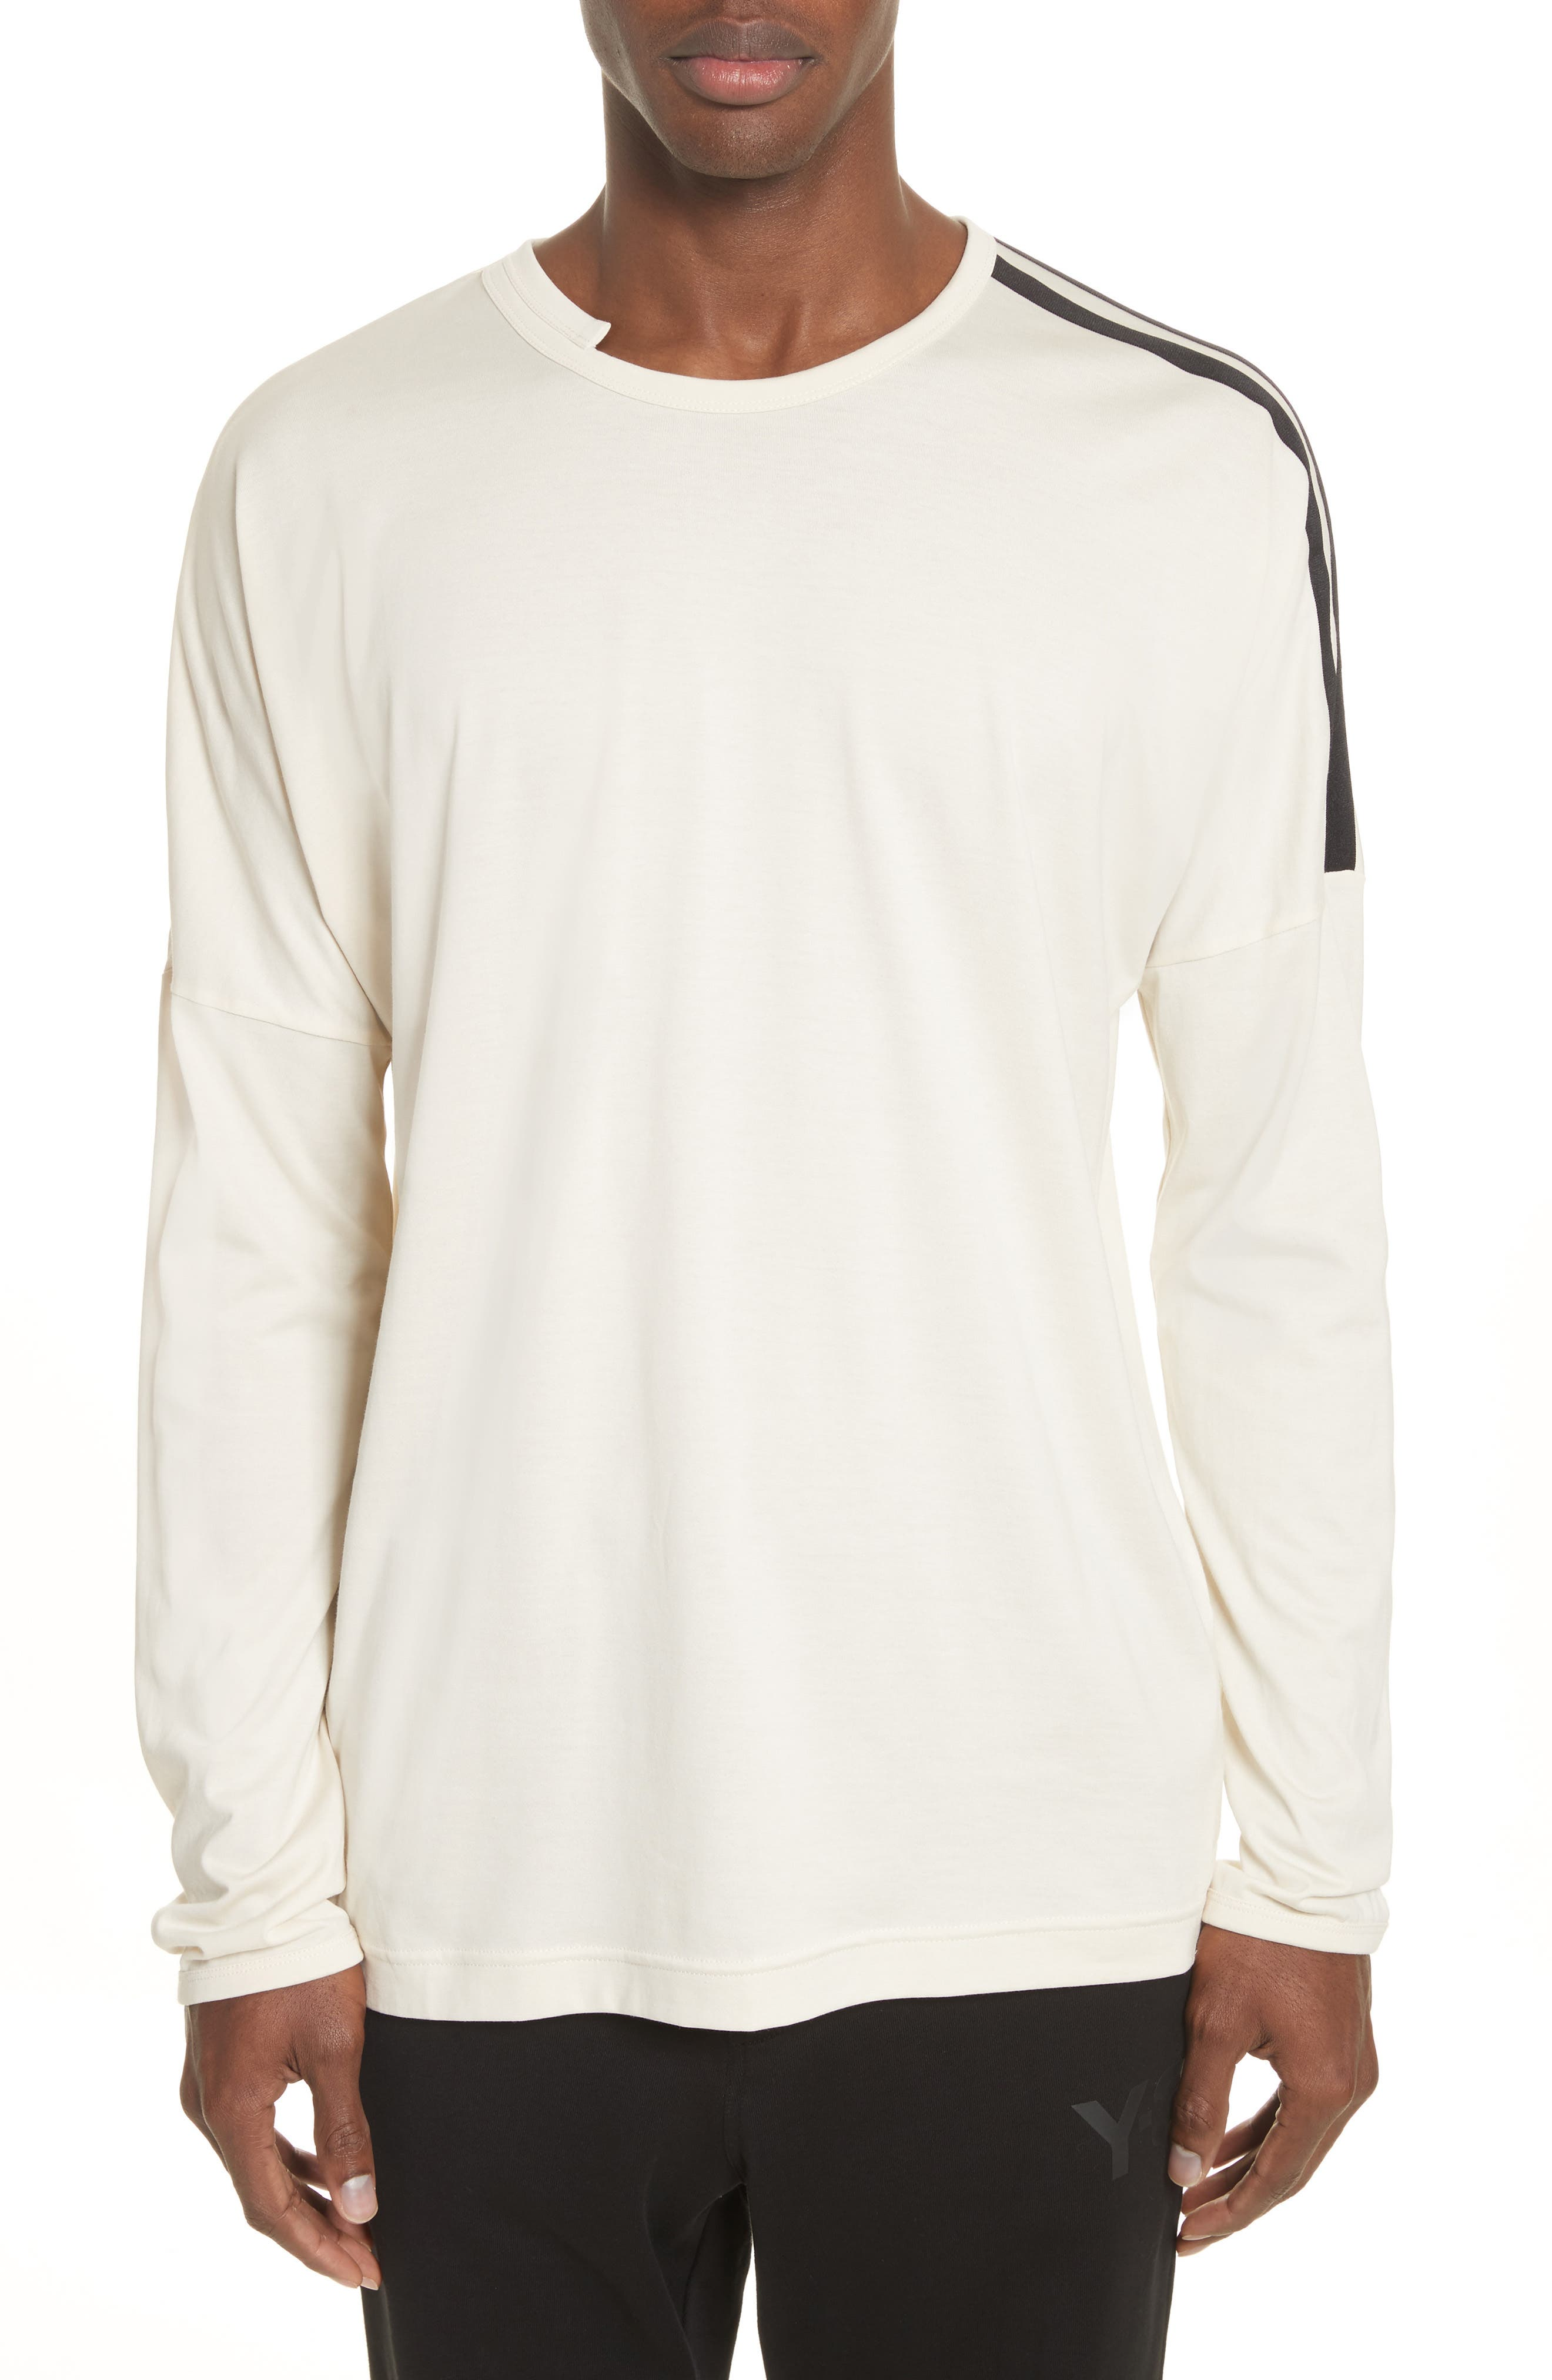 Y-3 x adidas Long Sleeve Crewneck T-Shirt